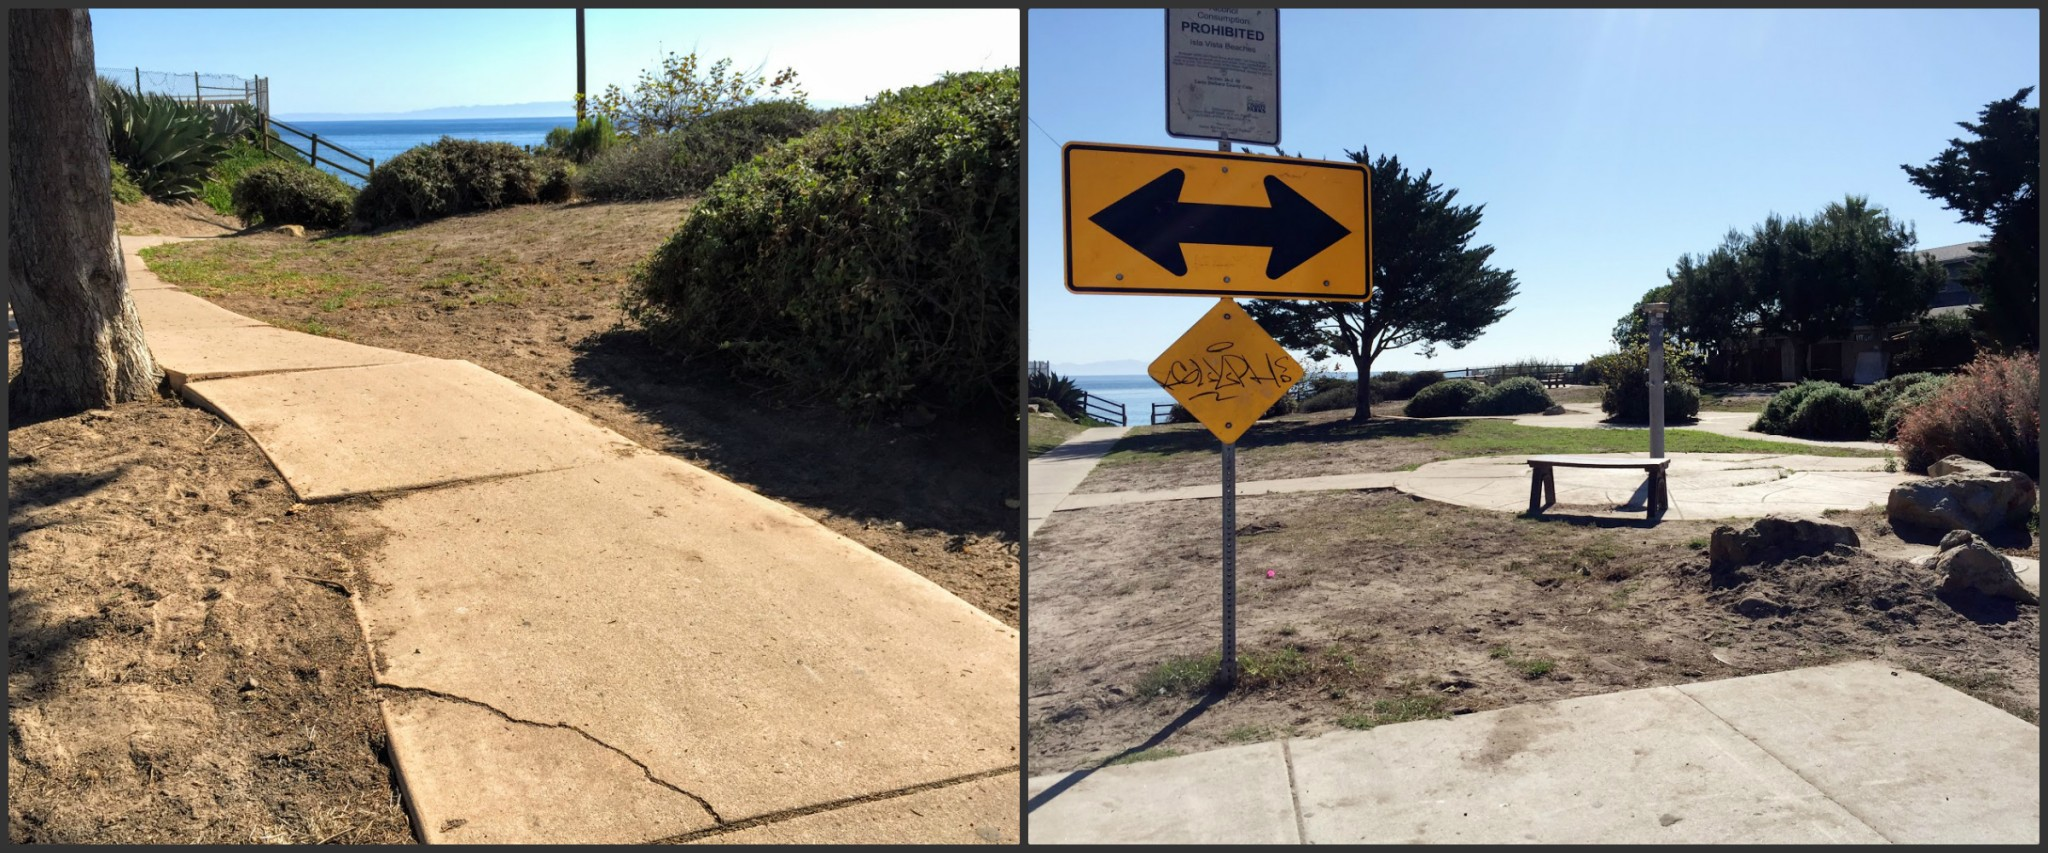 A community services district would fix sidewalks and clean graffiti. (Keon Zemoudeh)